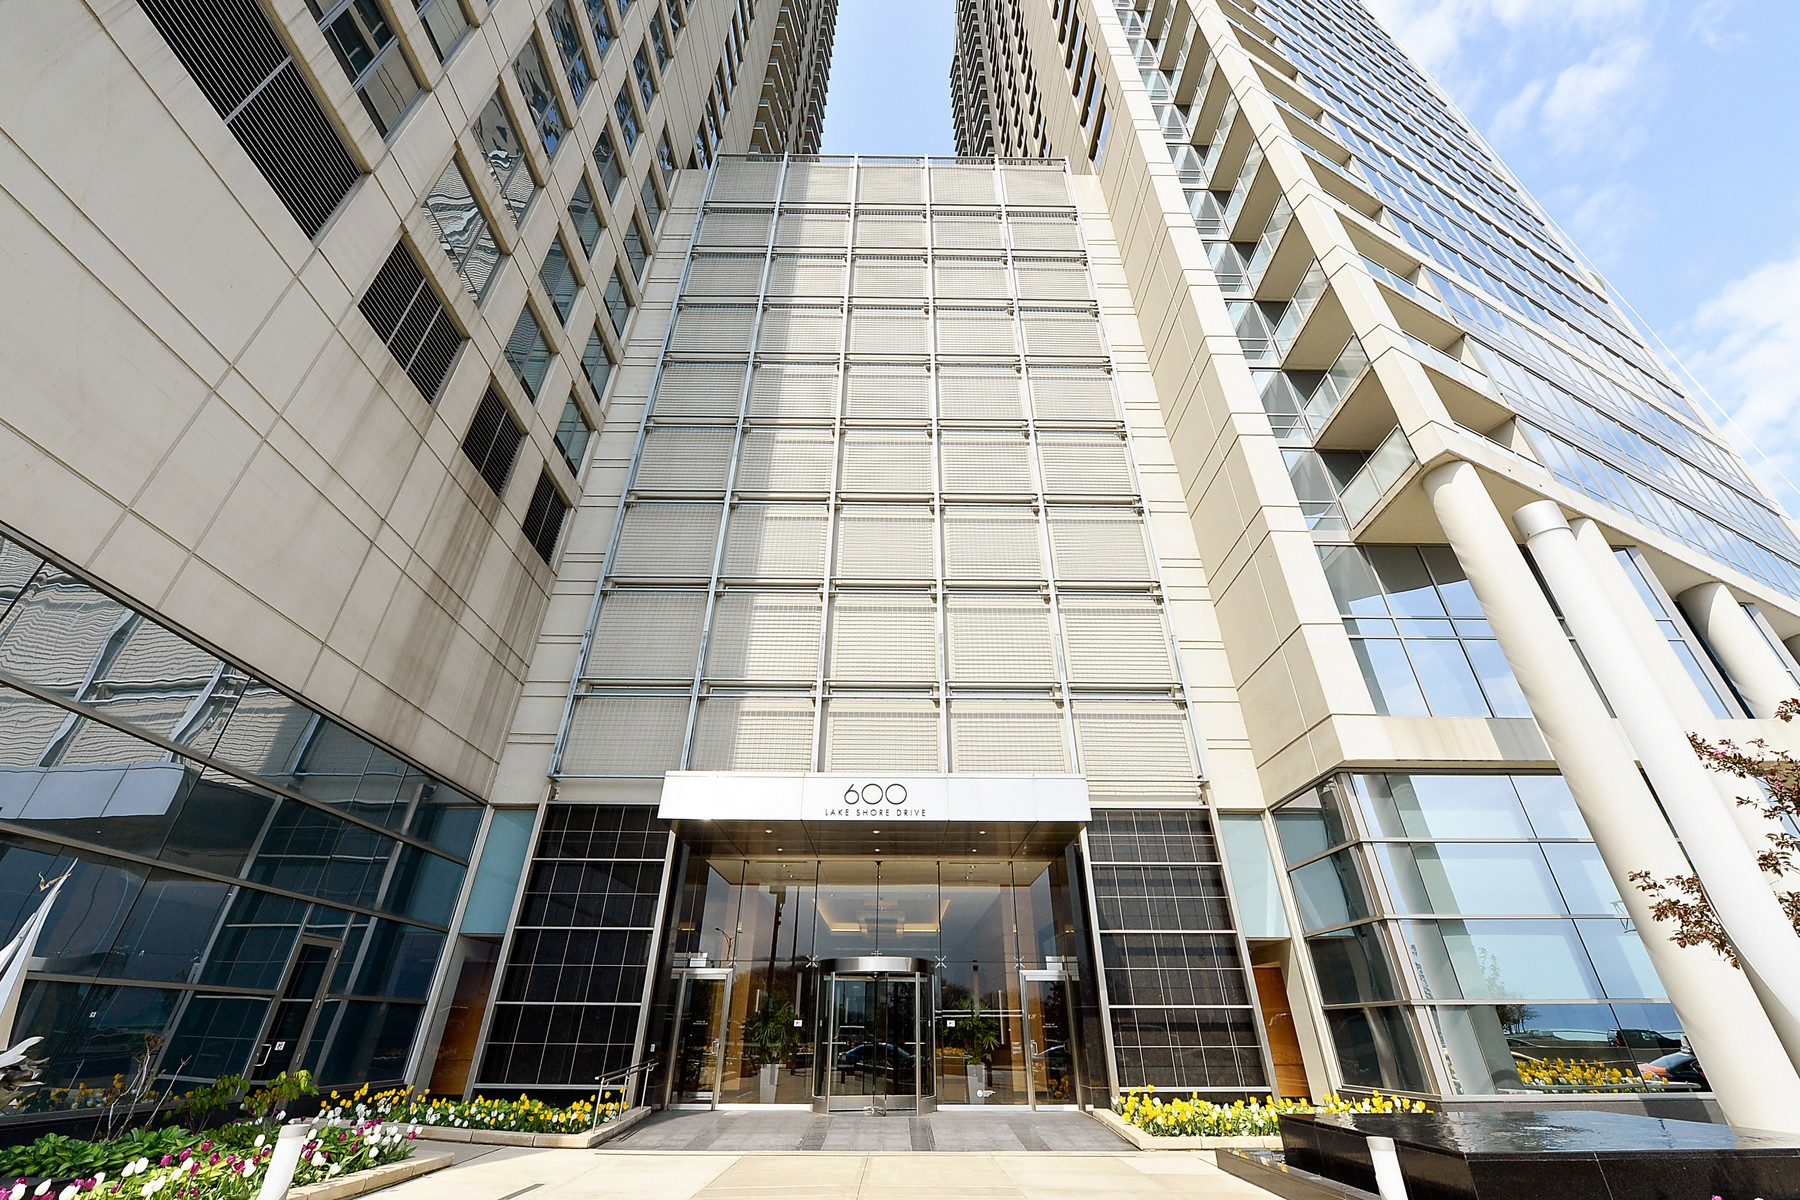 Частный односемейный дом для того Продажа на Spacious and Elegant on Lake Shore Drive 600 N Lake Shore Drive Unit 4210 Near North Side, Chicago, Иллинойс, 60611 Соединенные Штаты